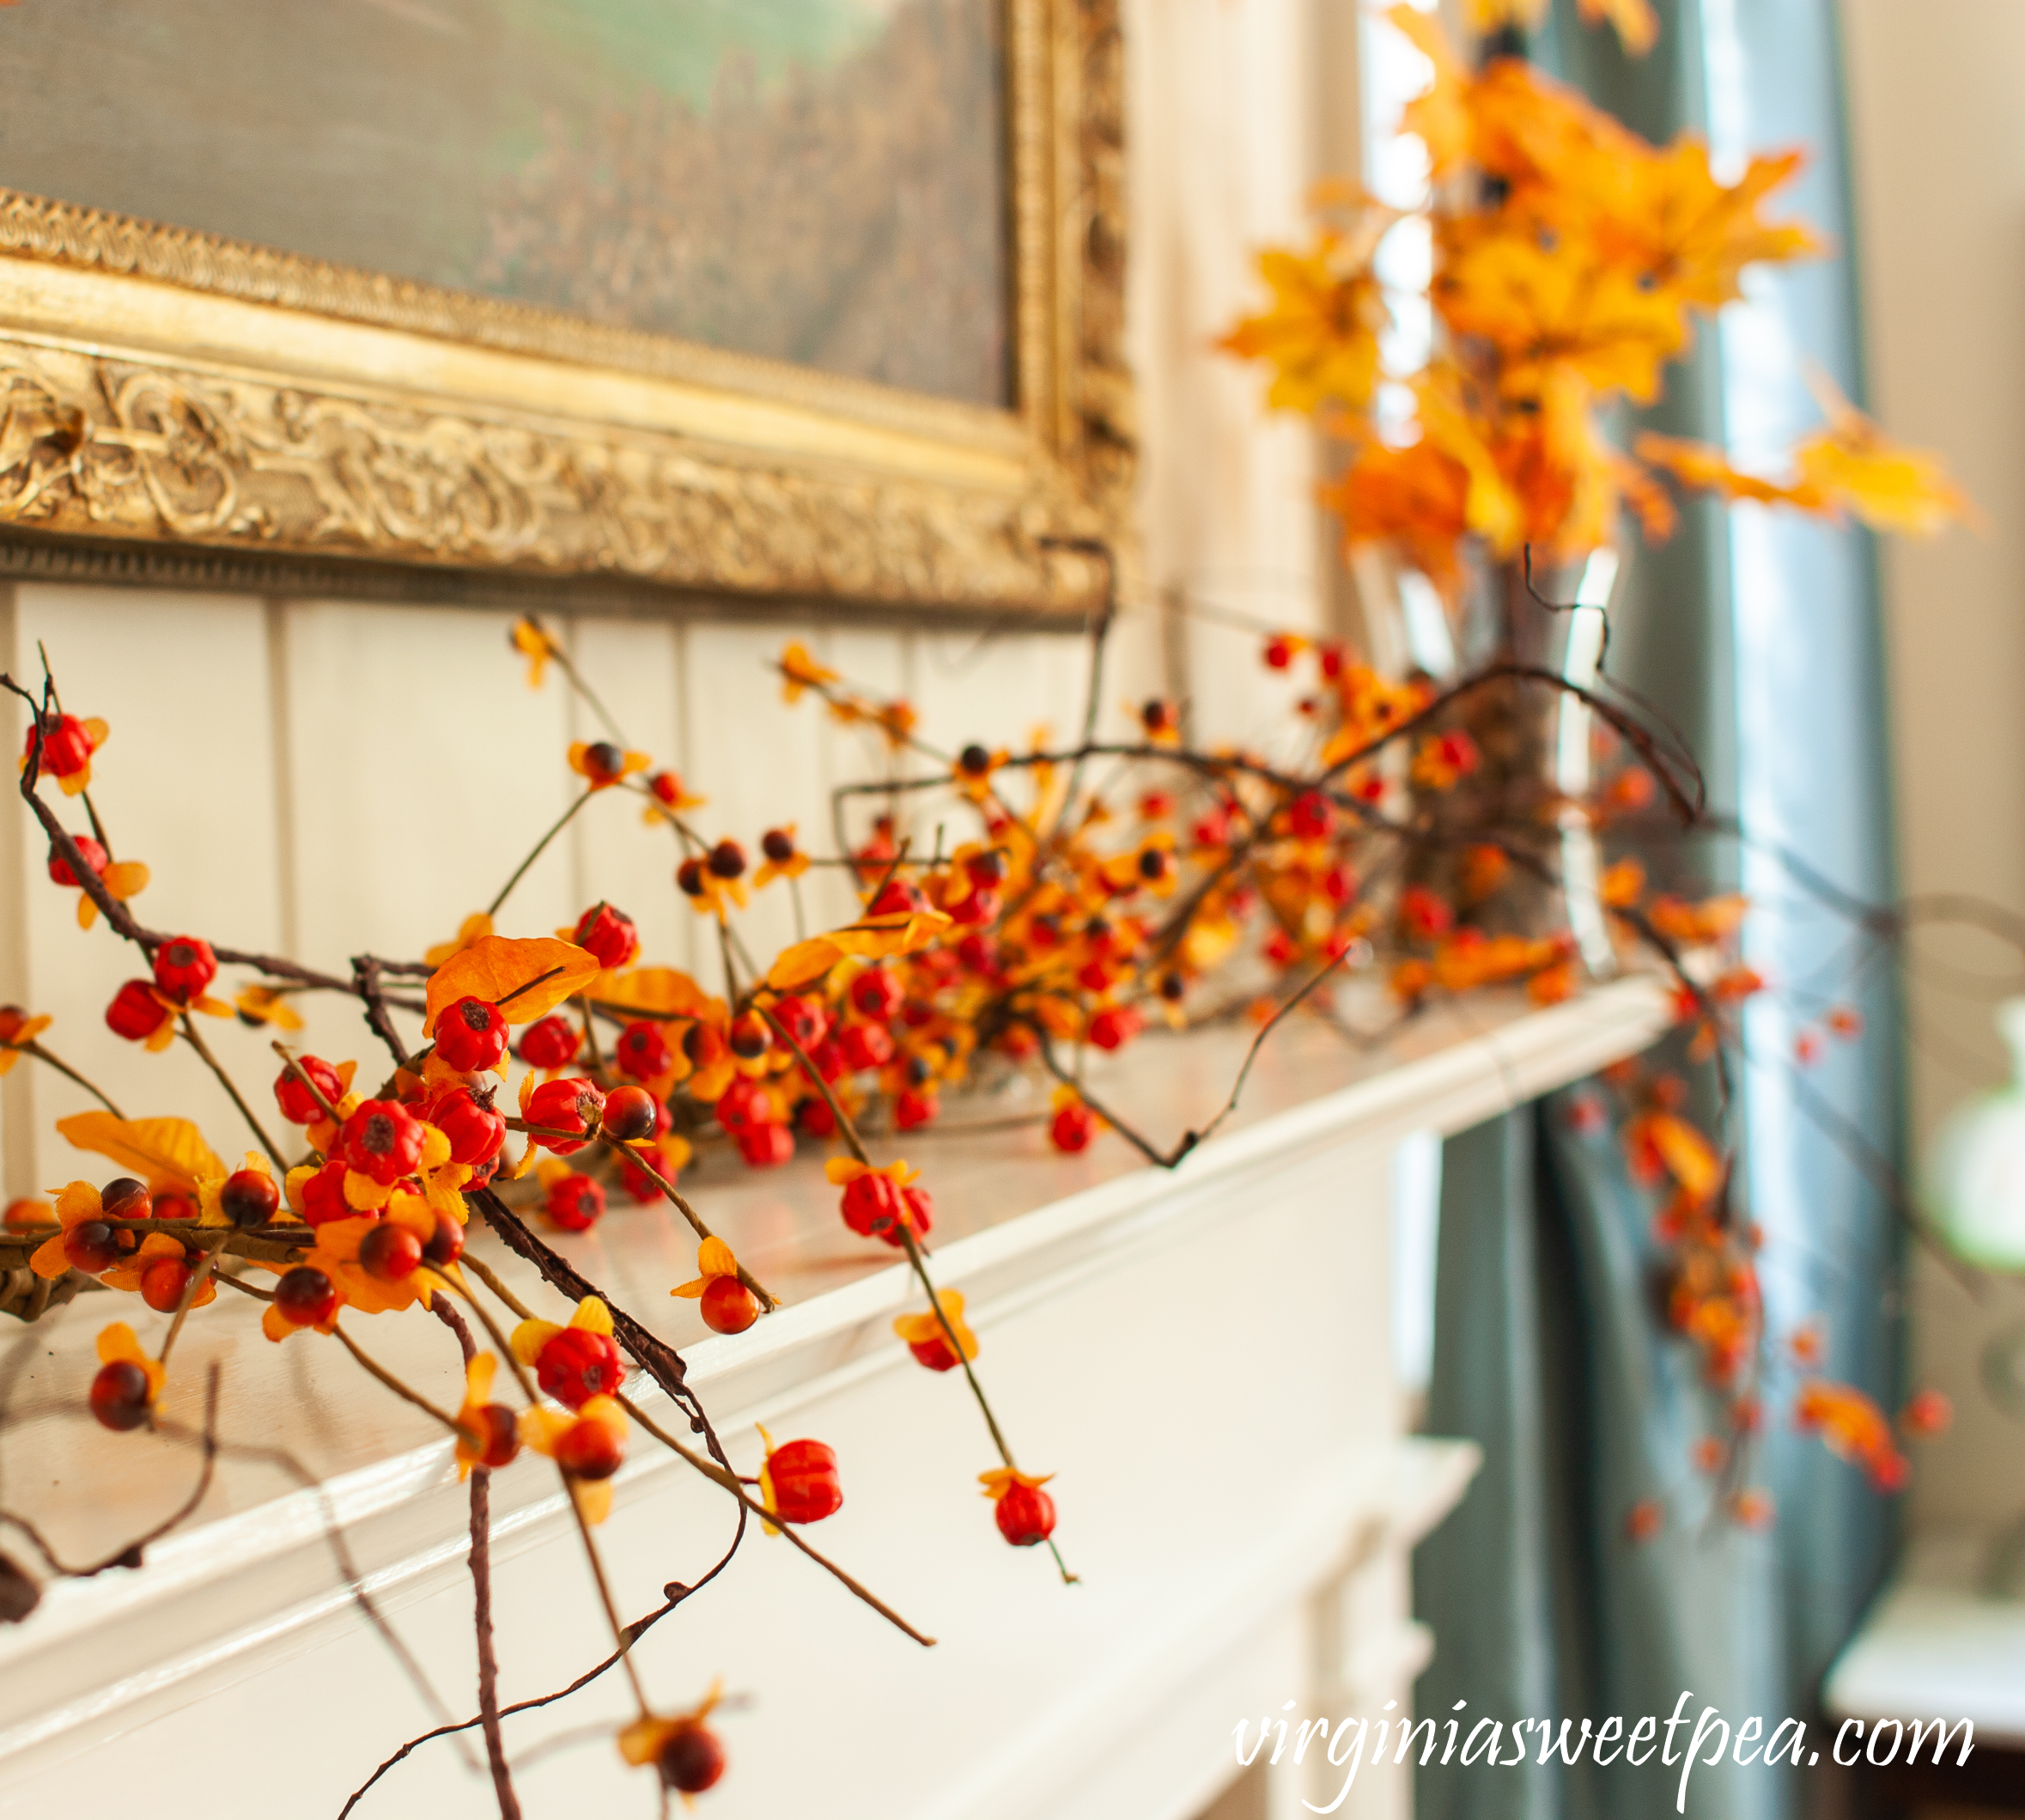 Bittersweet used to decorate a mantel for fall.